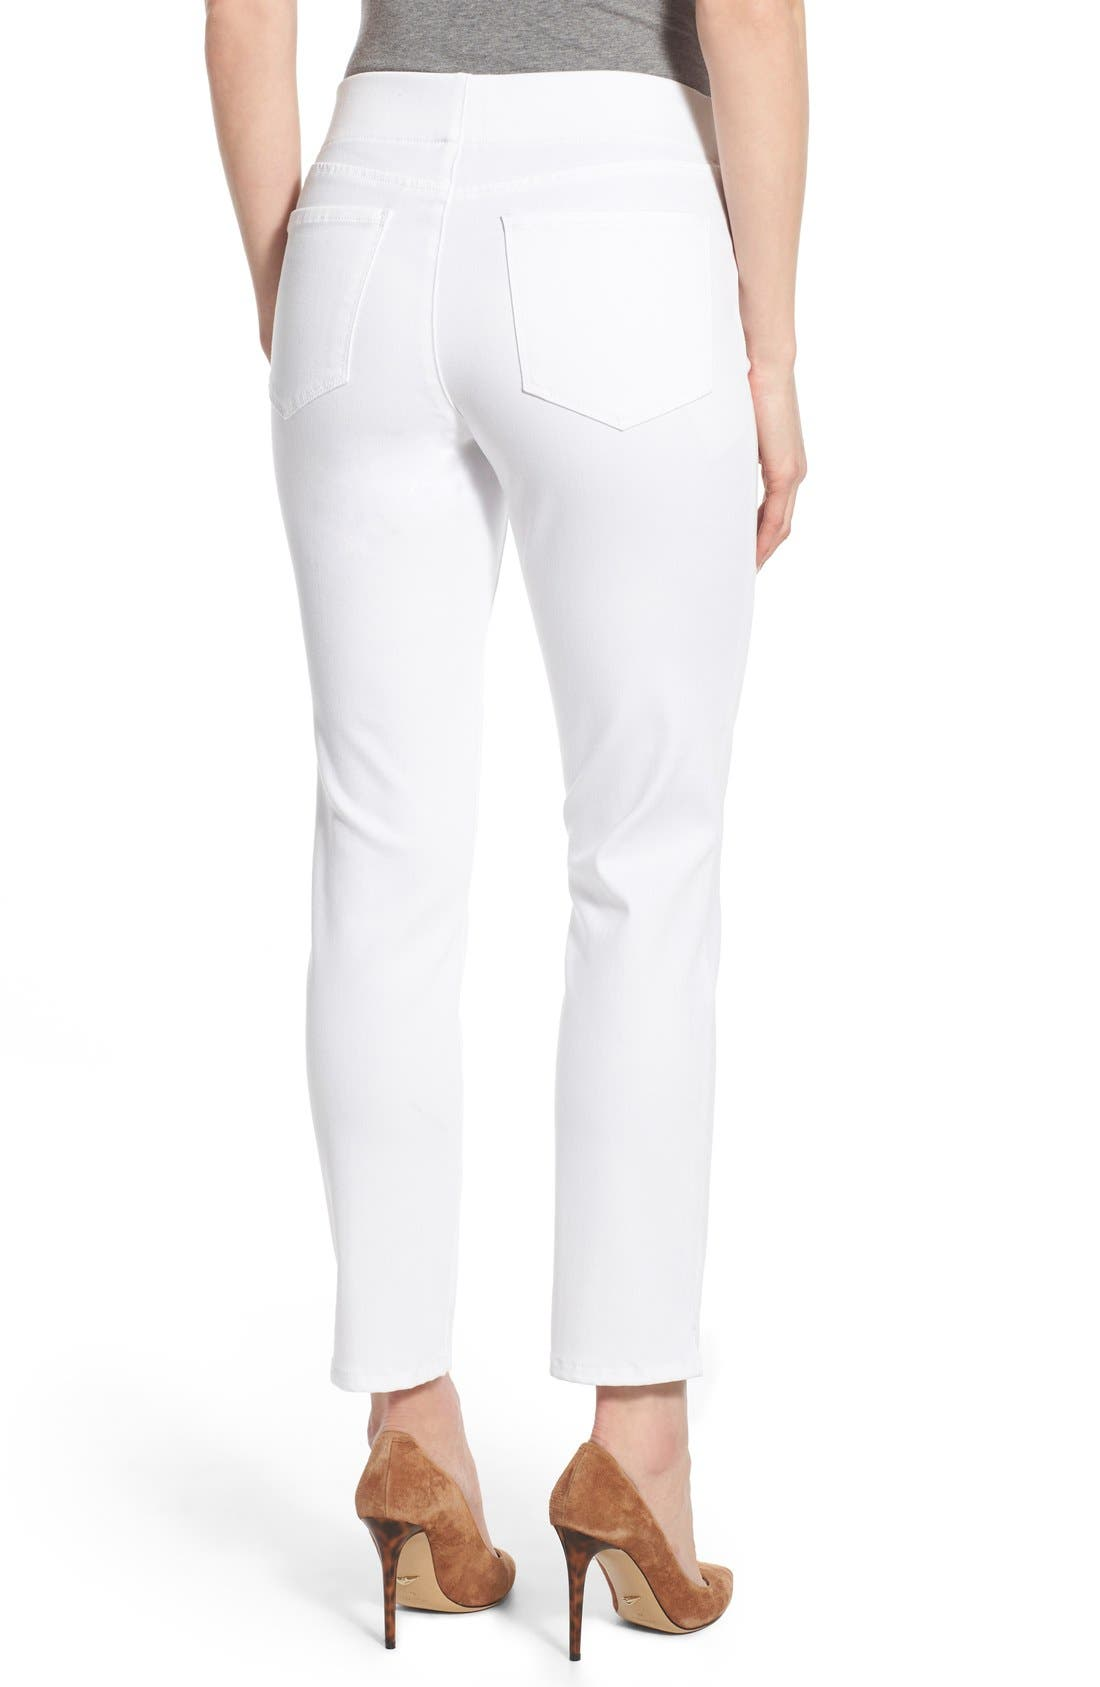 Alternate Image 2  - NYDJ 'Millie' Pull-On Stretch Ankle Skinny Jeans (Endless White) (Regular & Petite)